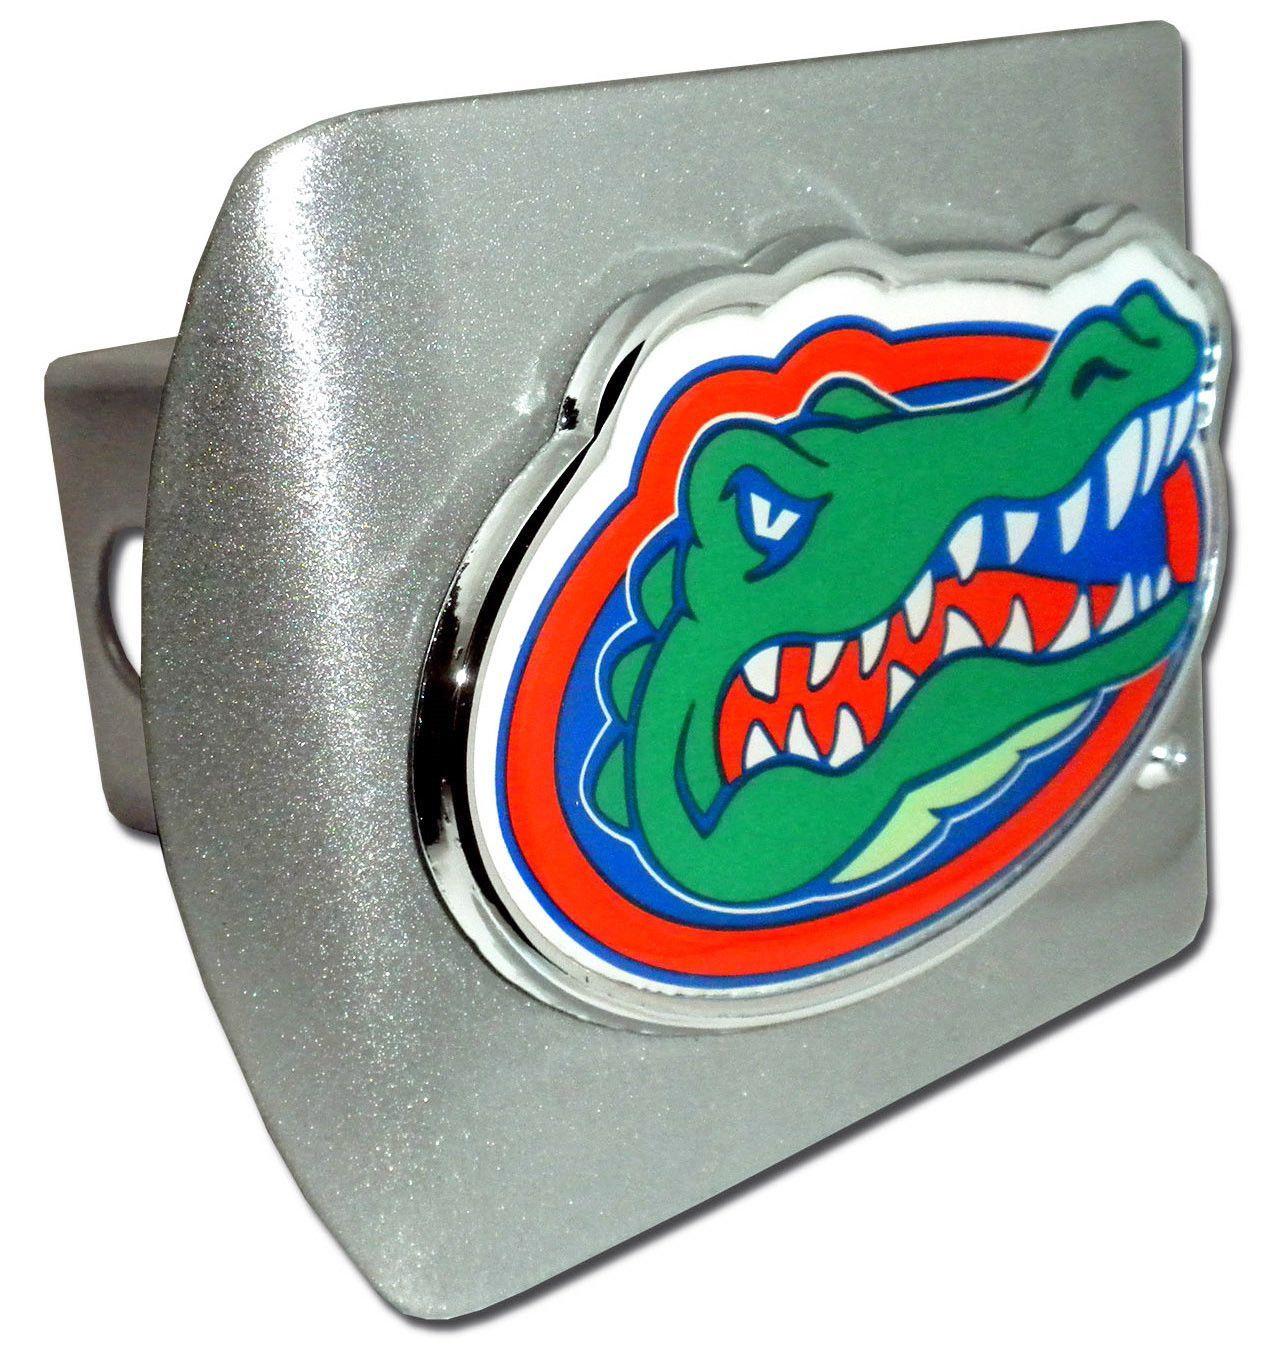 Elektroplate Florida Gators Brushed Metal Trailer Hitch Cover with Chrome Metal Gator Logo